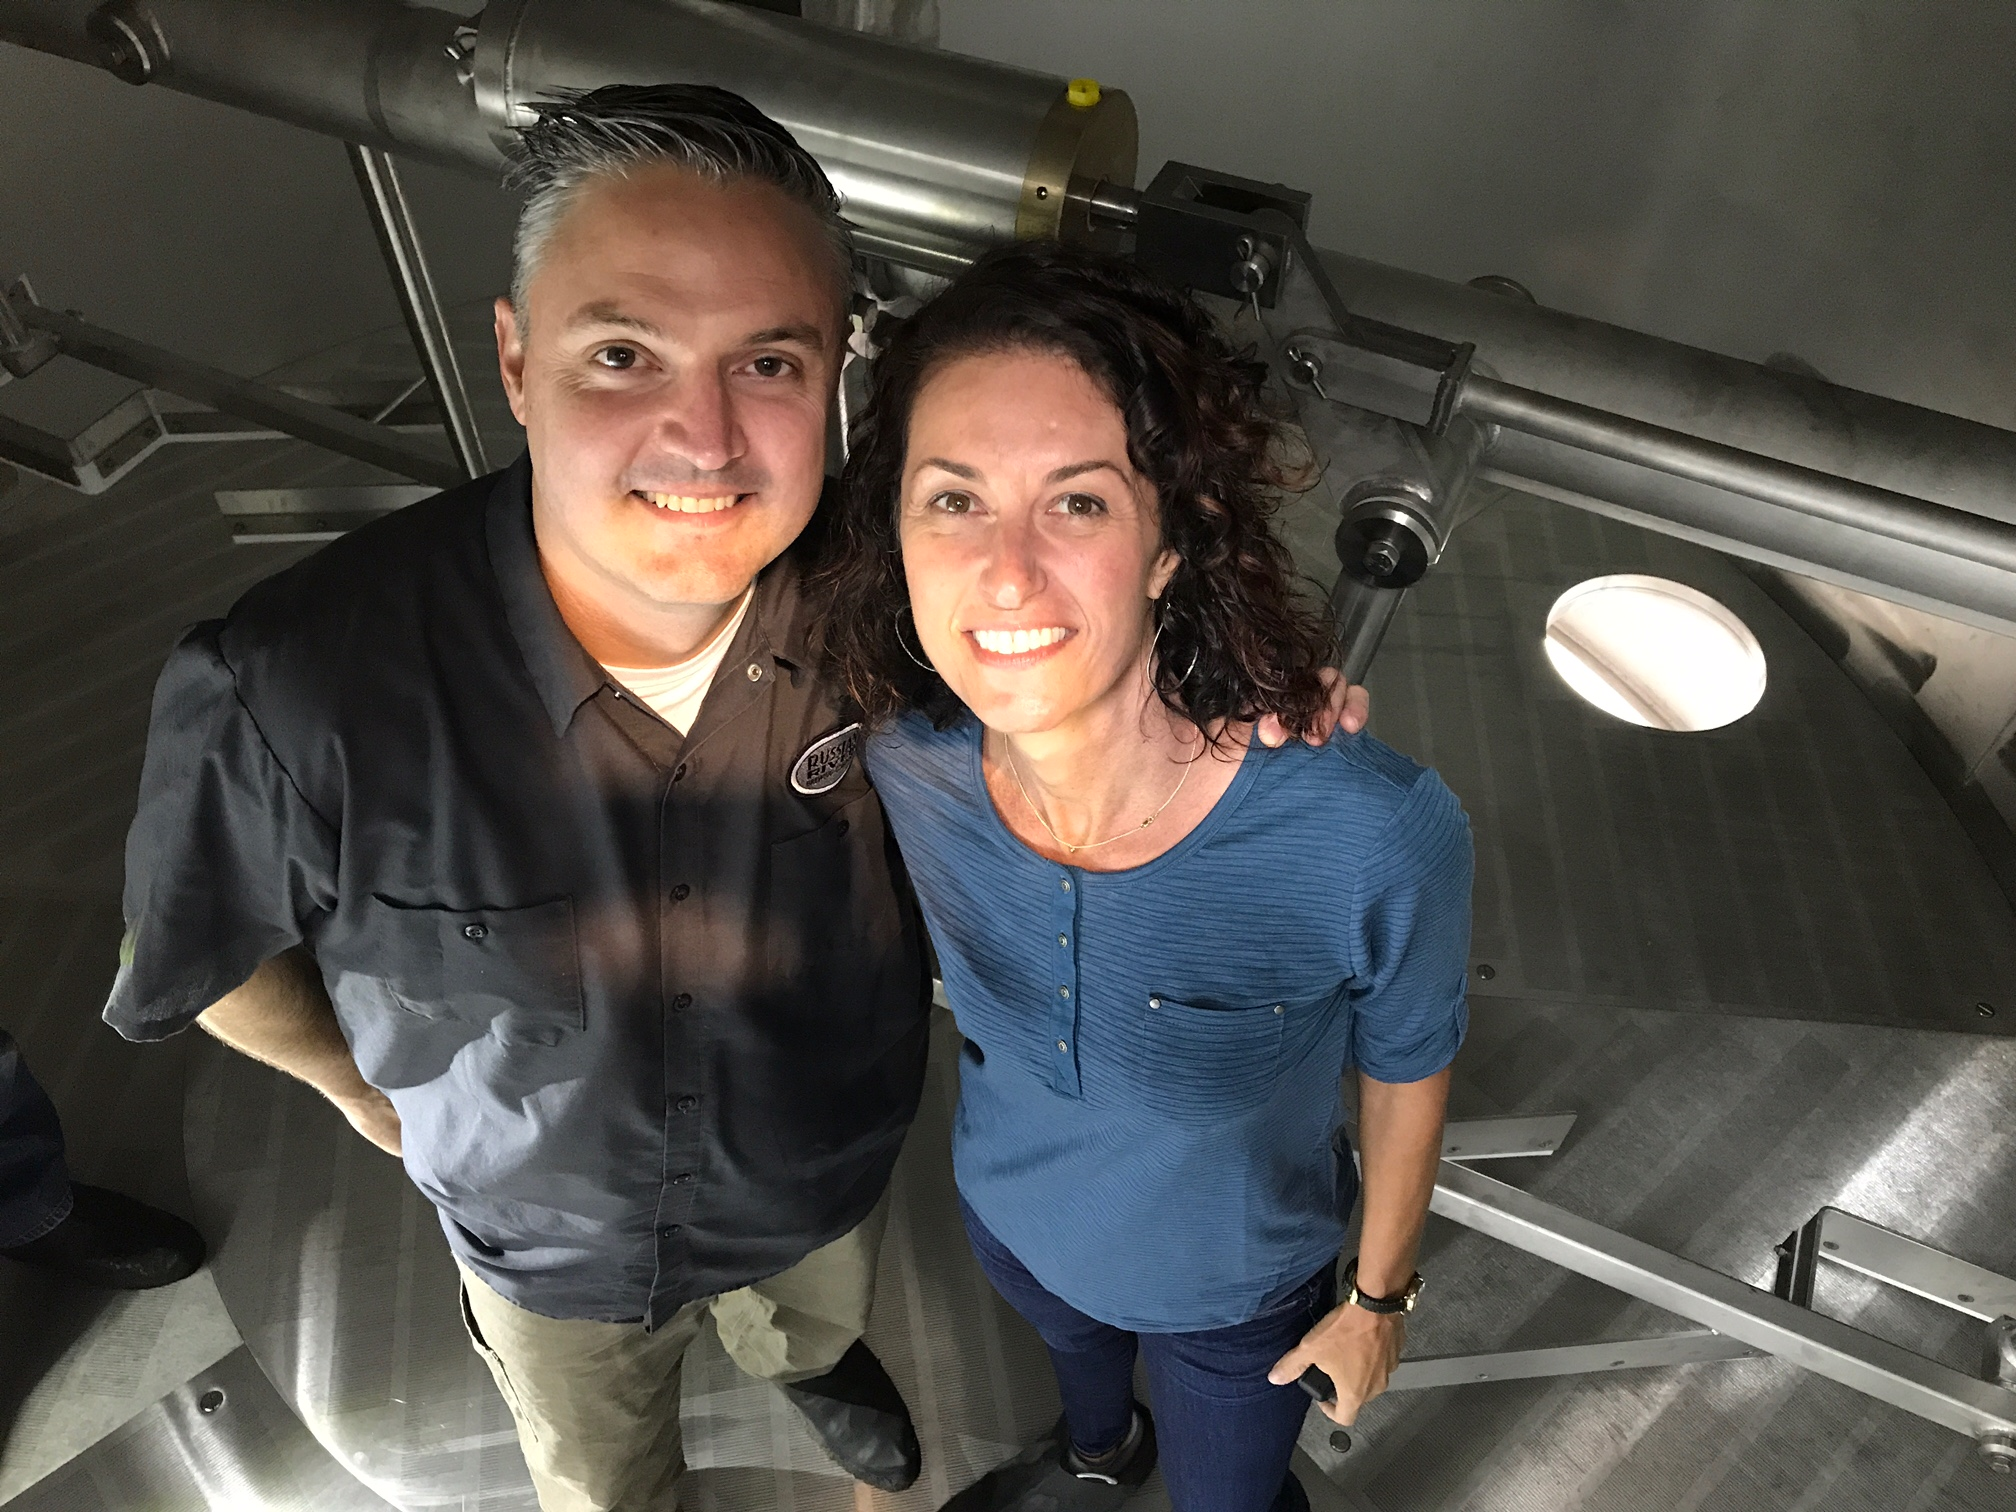 Vinnie & Natalie getting up close and personal with the new brewhouse!